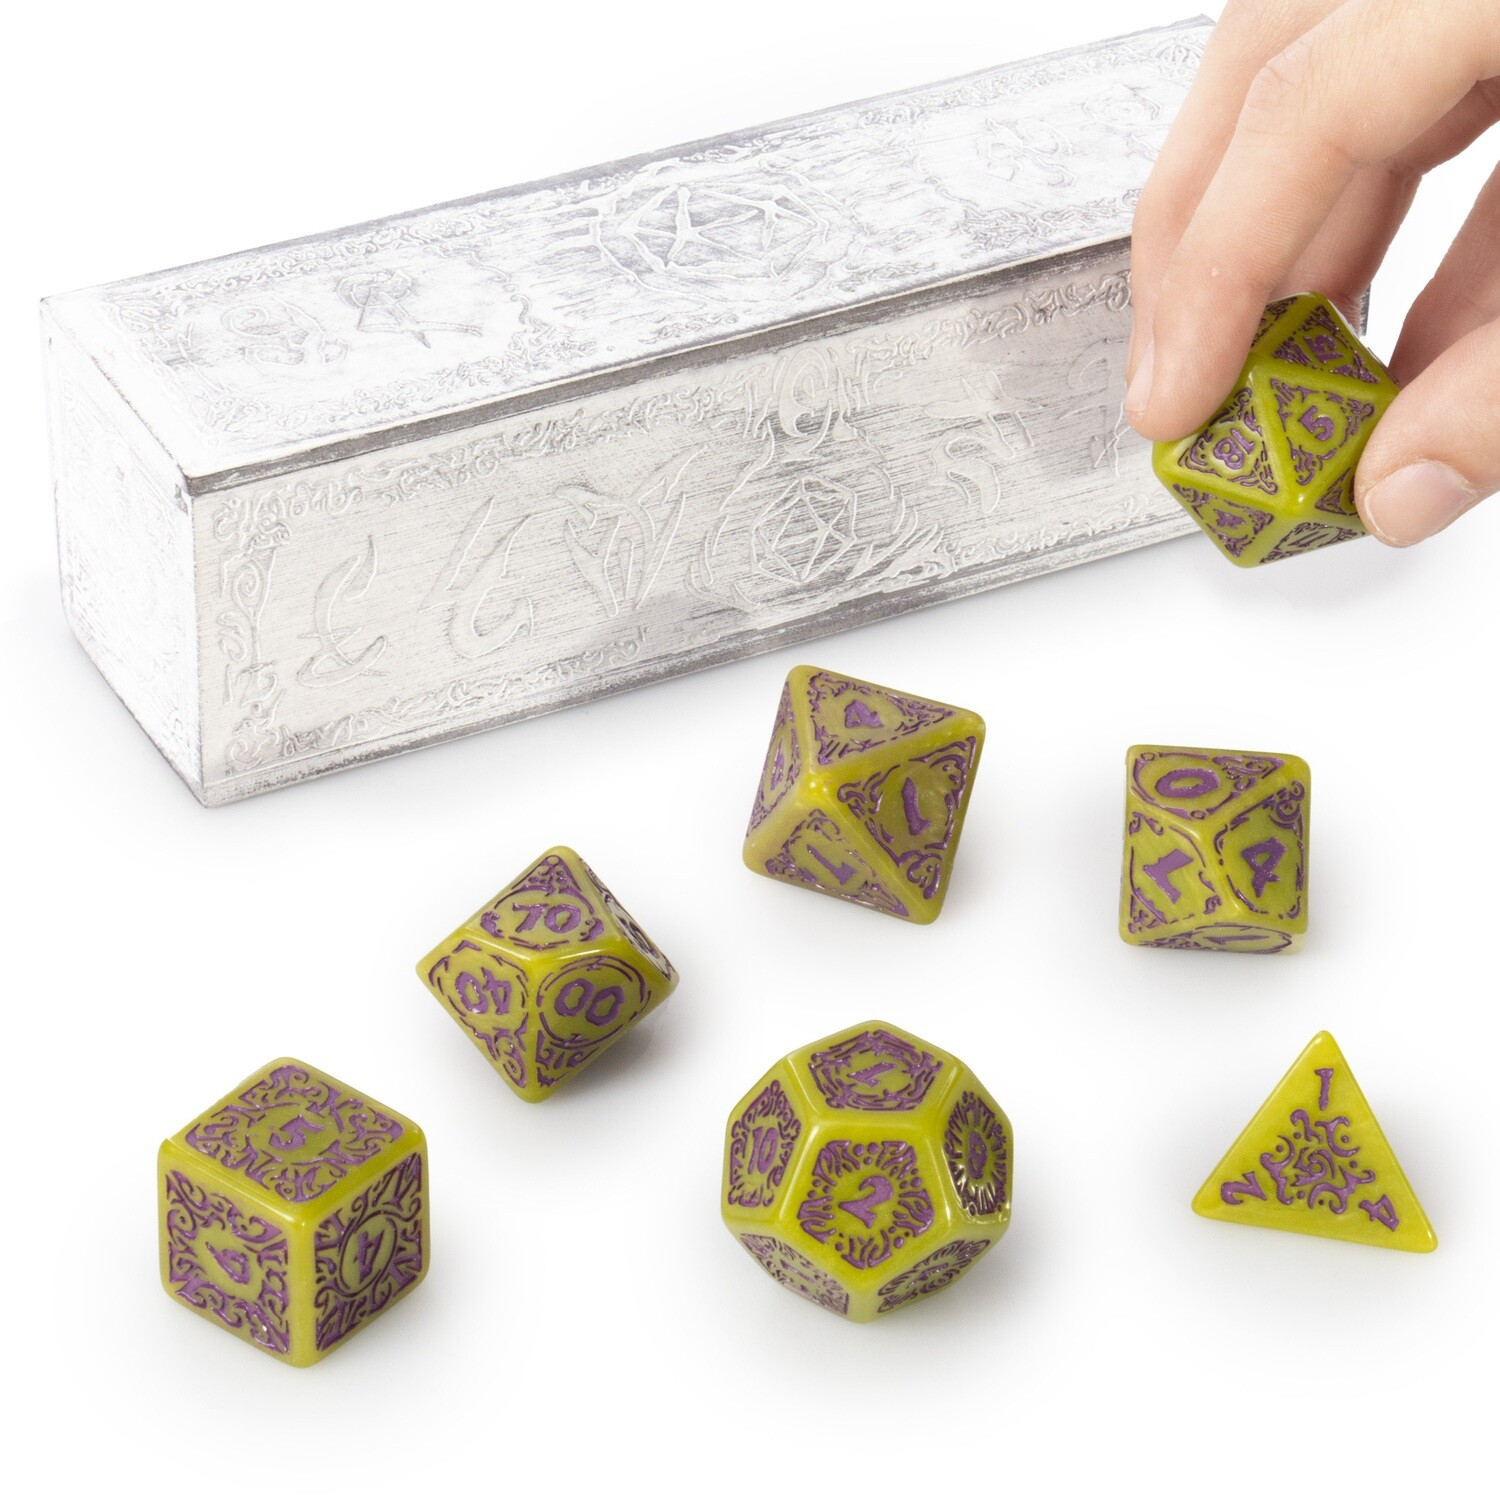 25mm Titan Dice Polyhedral Set with Box, Achlys